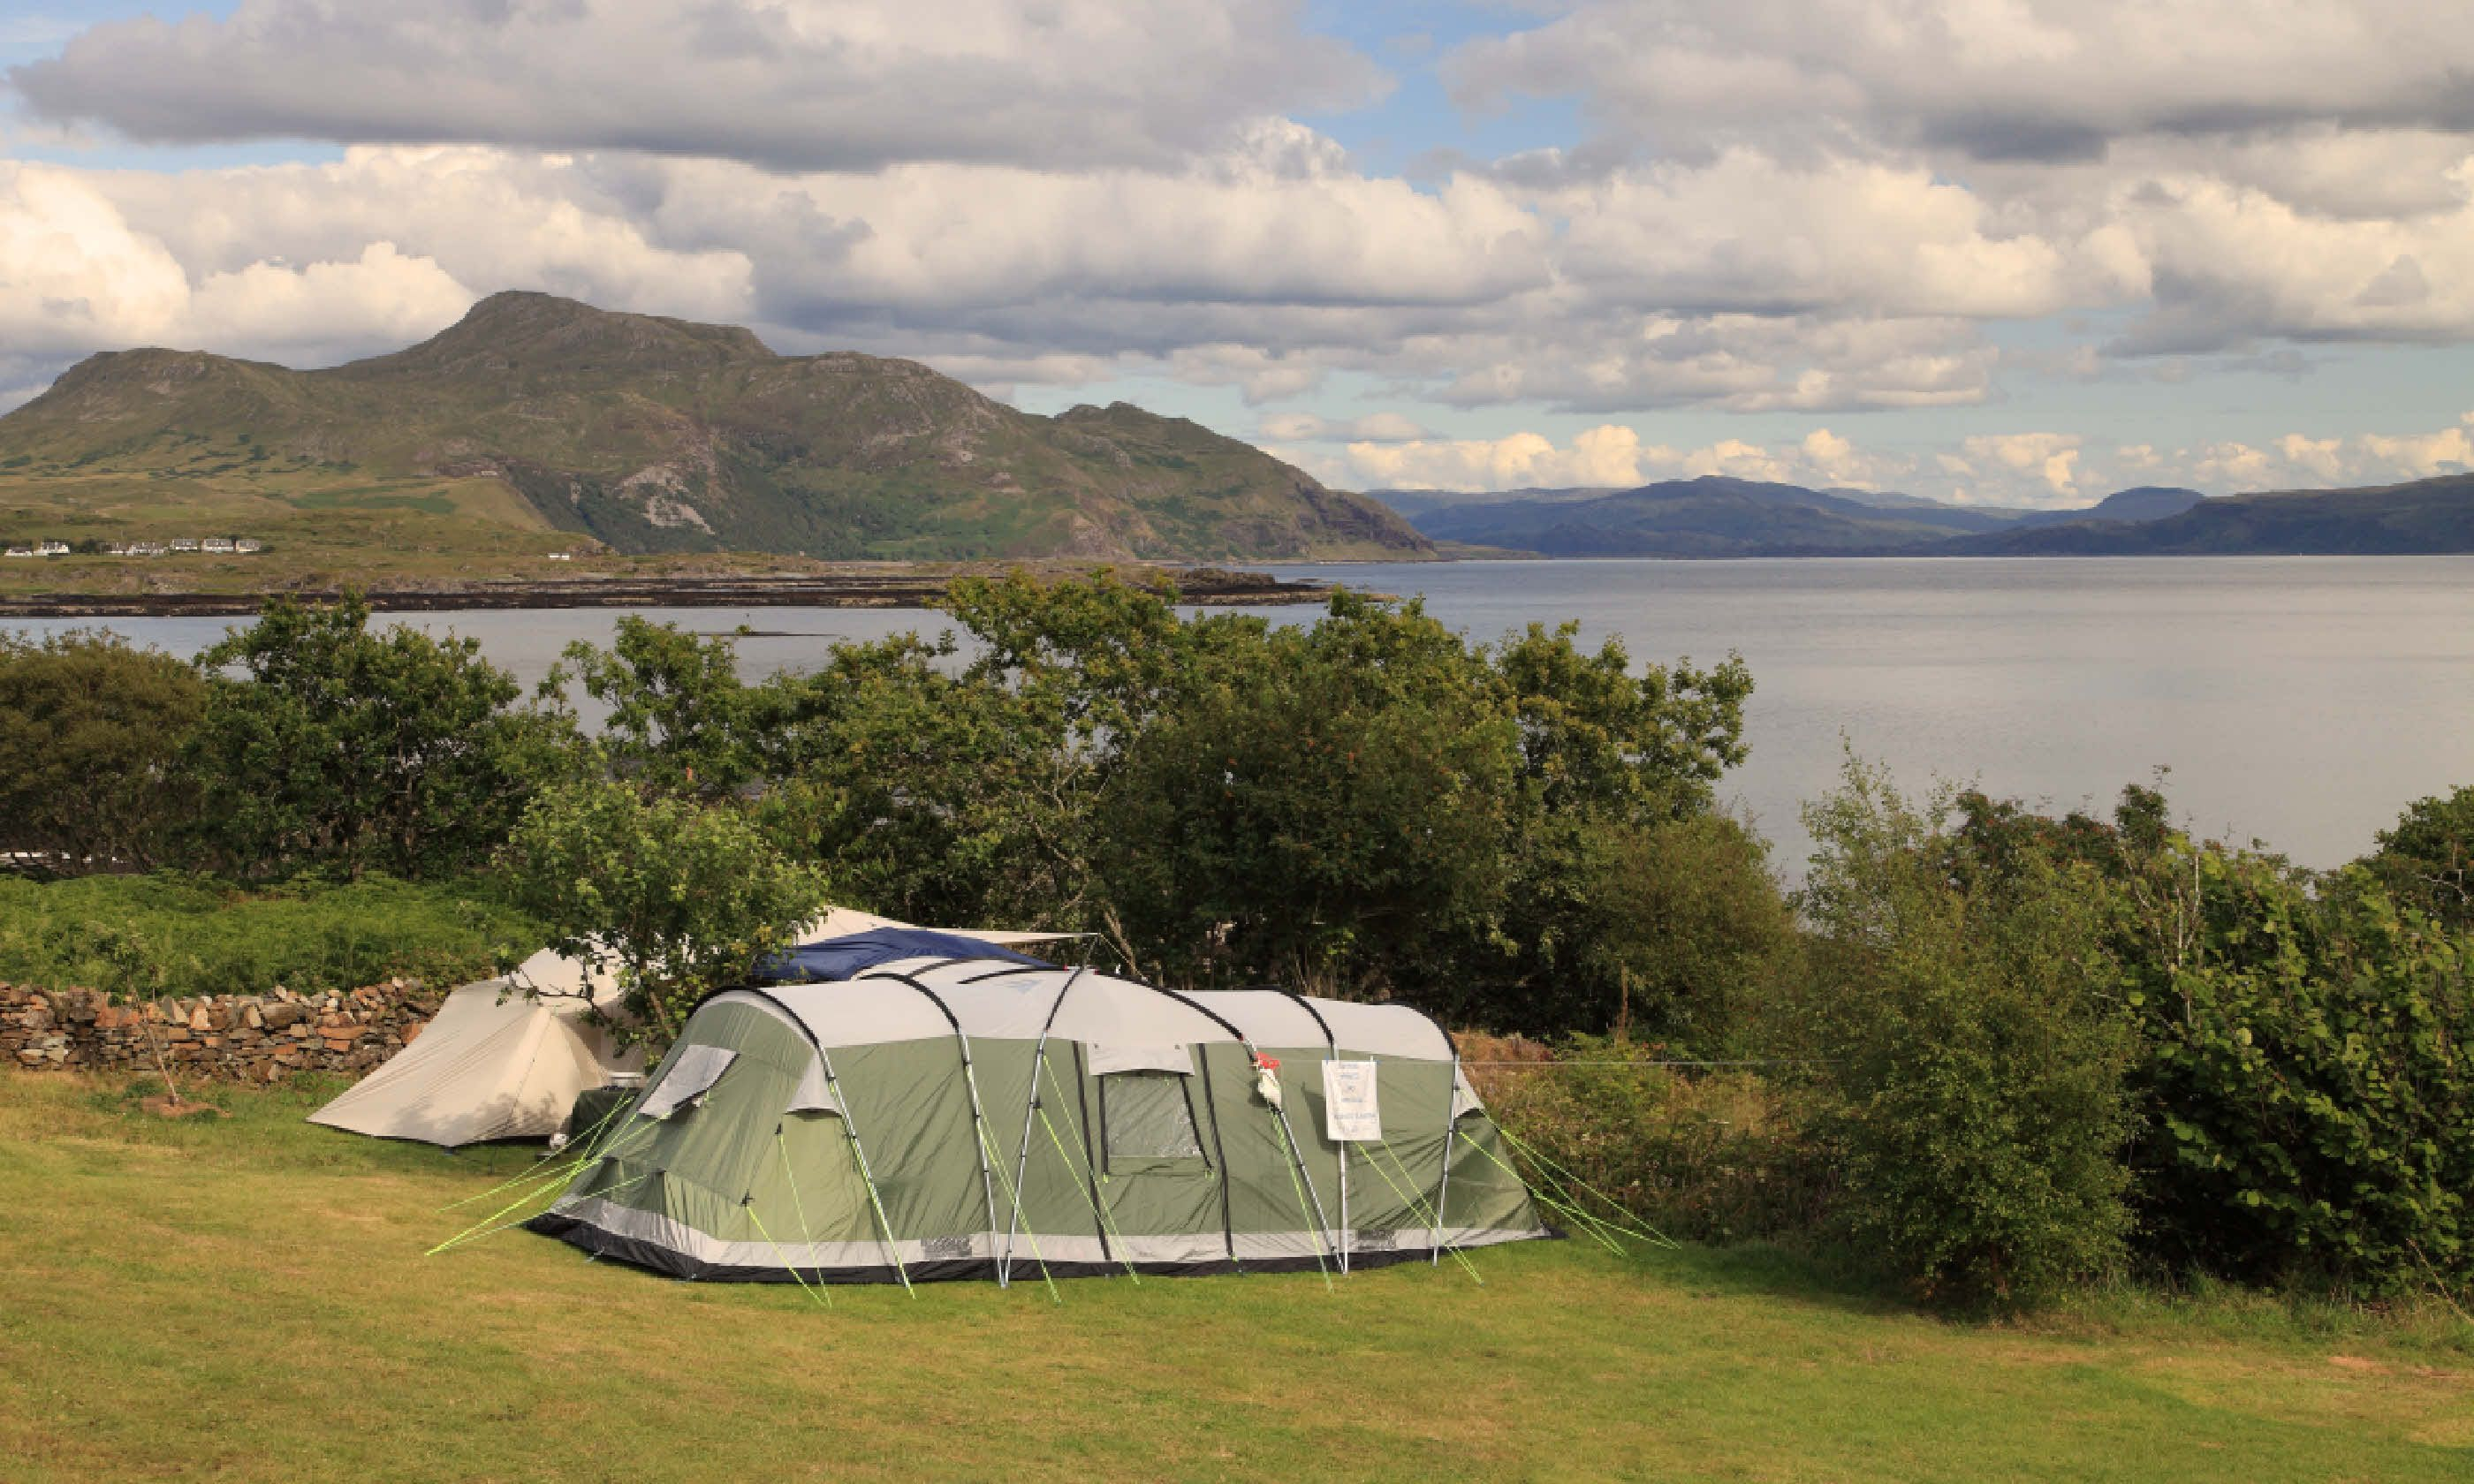 Whatu0027s allowed Tents c&ervans groups dogs u2013 yes. Large motorhomes caravans u2013 no. Amenities 20 pitches and 4 c&ervan hook-ups. & Scotlandu0027s 7 best campsites | Wanderlust